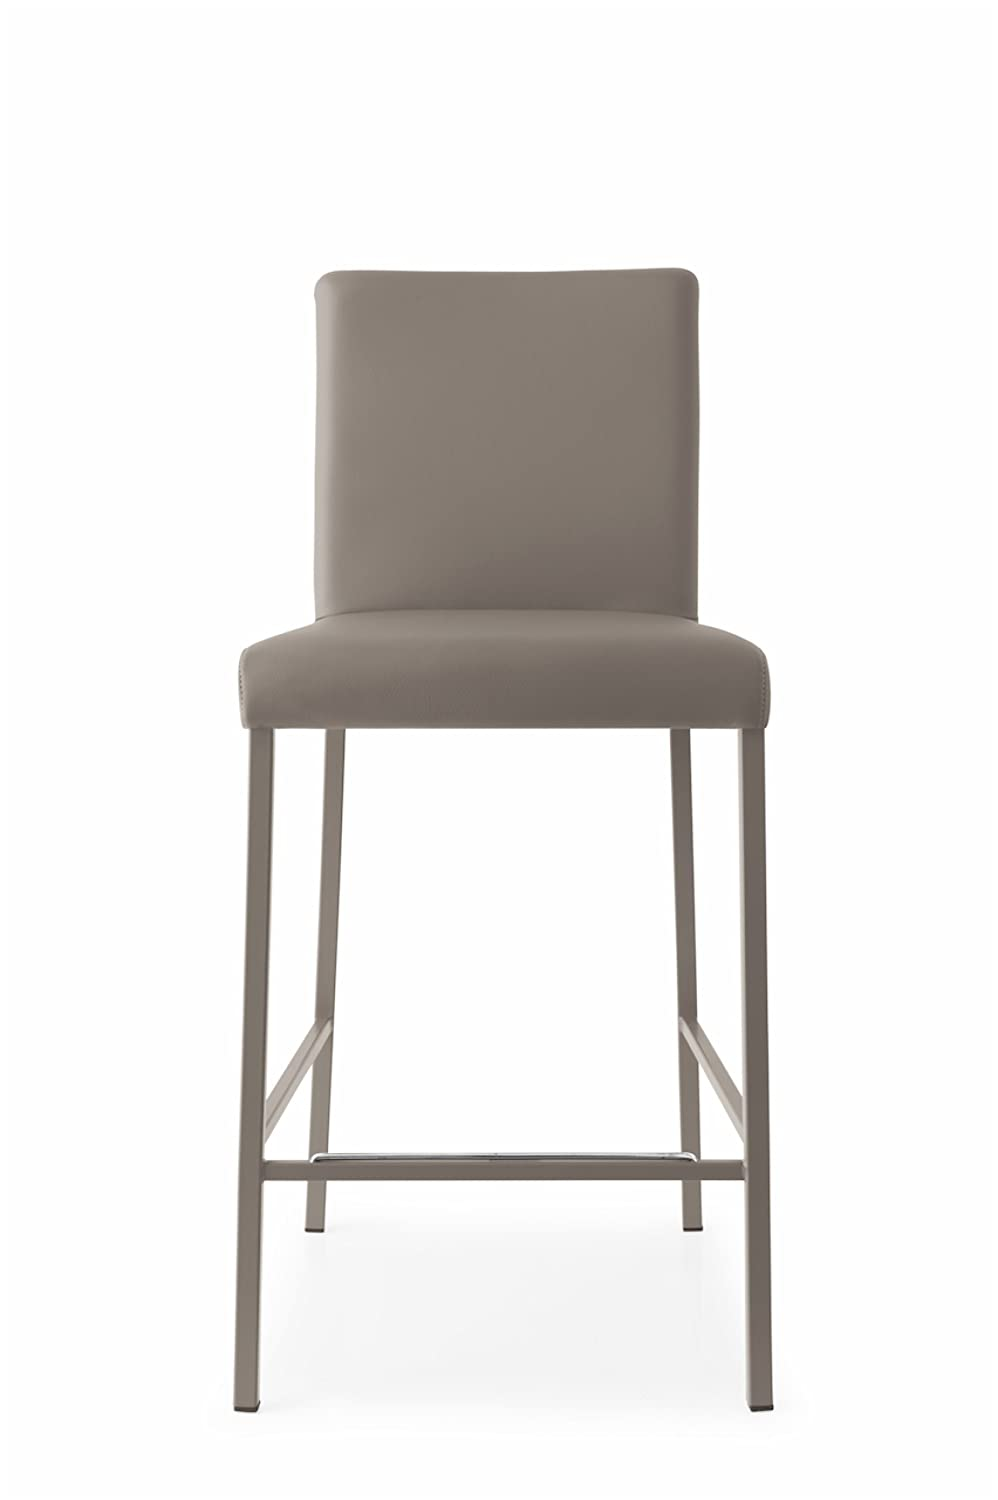 Amazon com connubia garda bar stool metal stained matt taupe frame ekos taupe seat kitchen dining